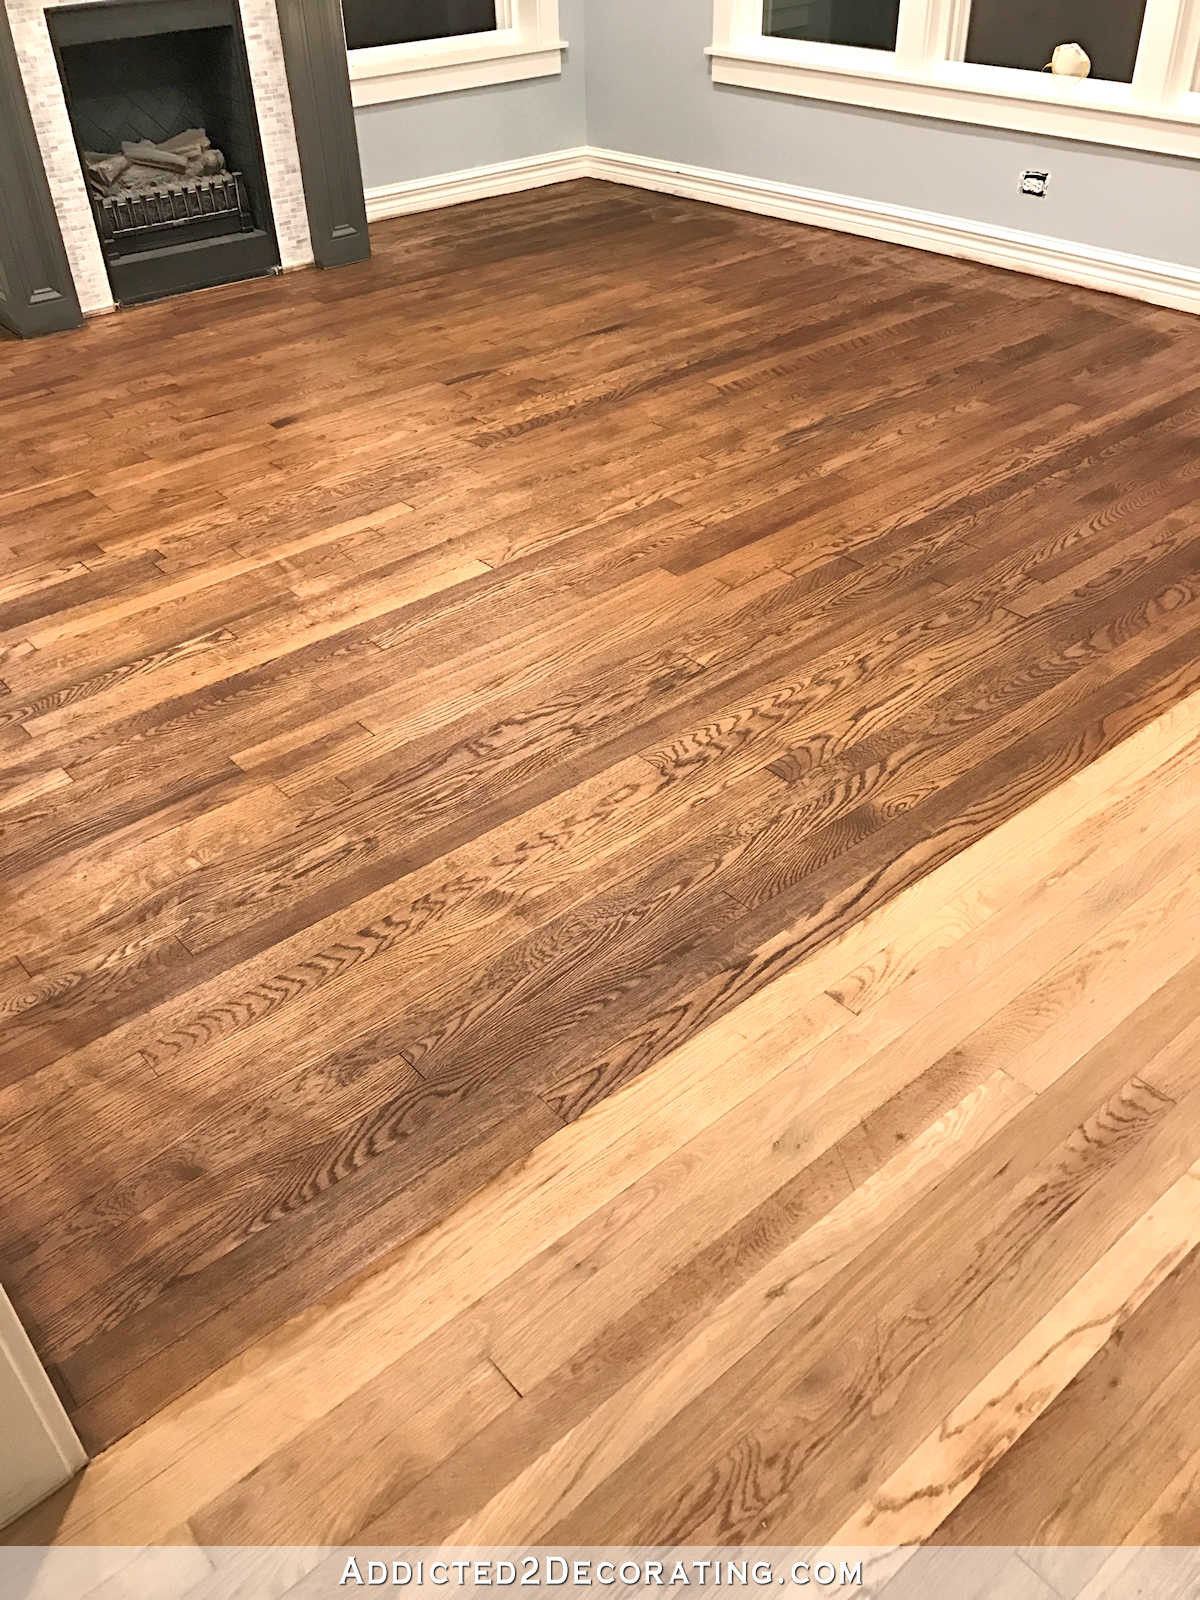 polyurethane finish hardwood floors of adventures in staining my red oak hardwood floors products process with regard to staining red oak hardwood floors 7 stain on the living room floor